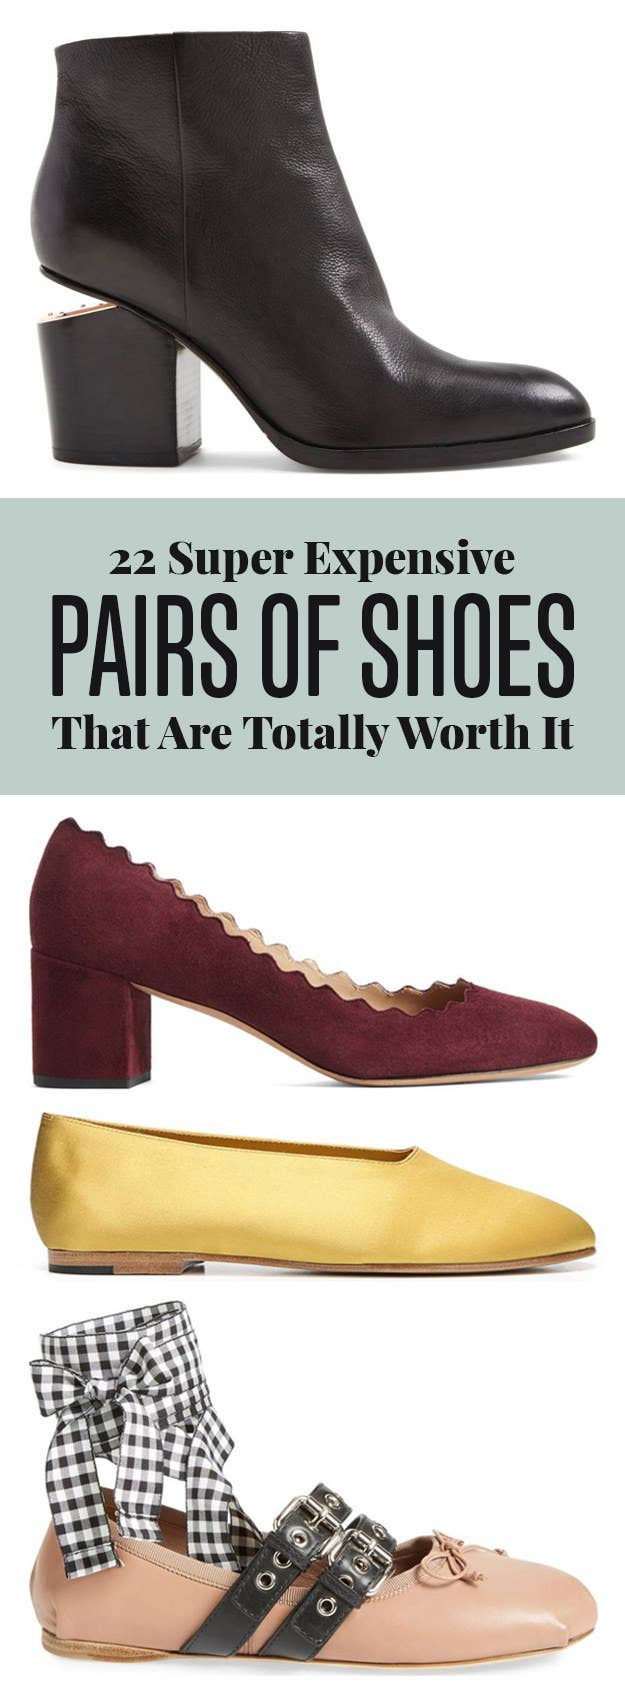 80b6b29d0616 22 Super Expensive Pairs Of Shoes That People Actually Swear By